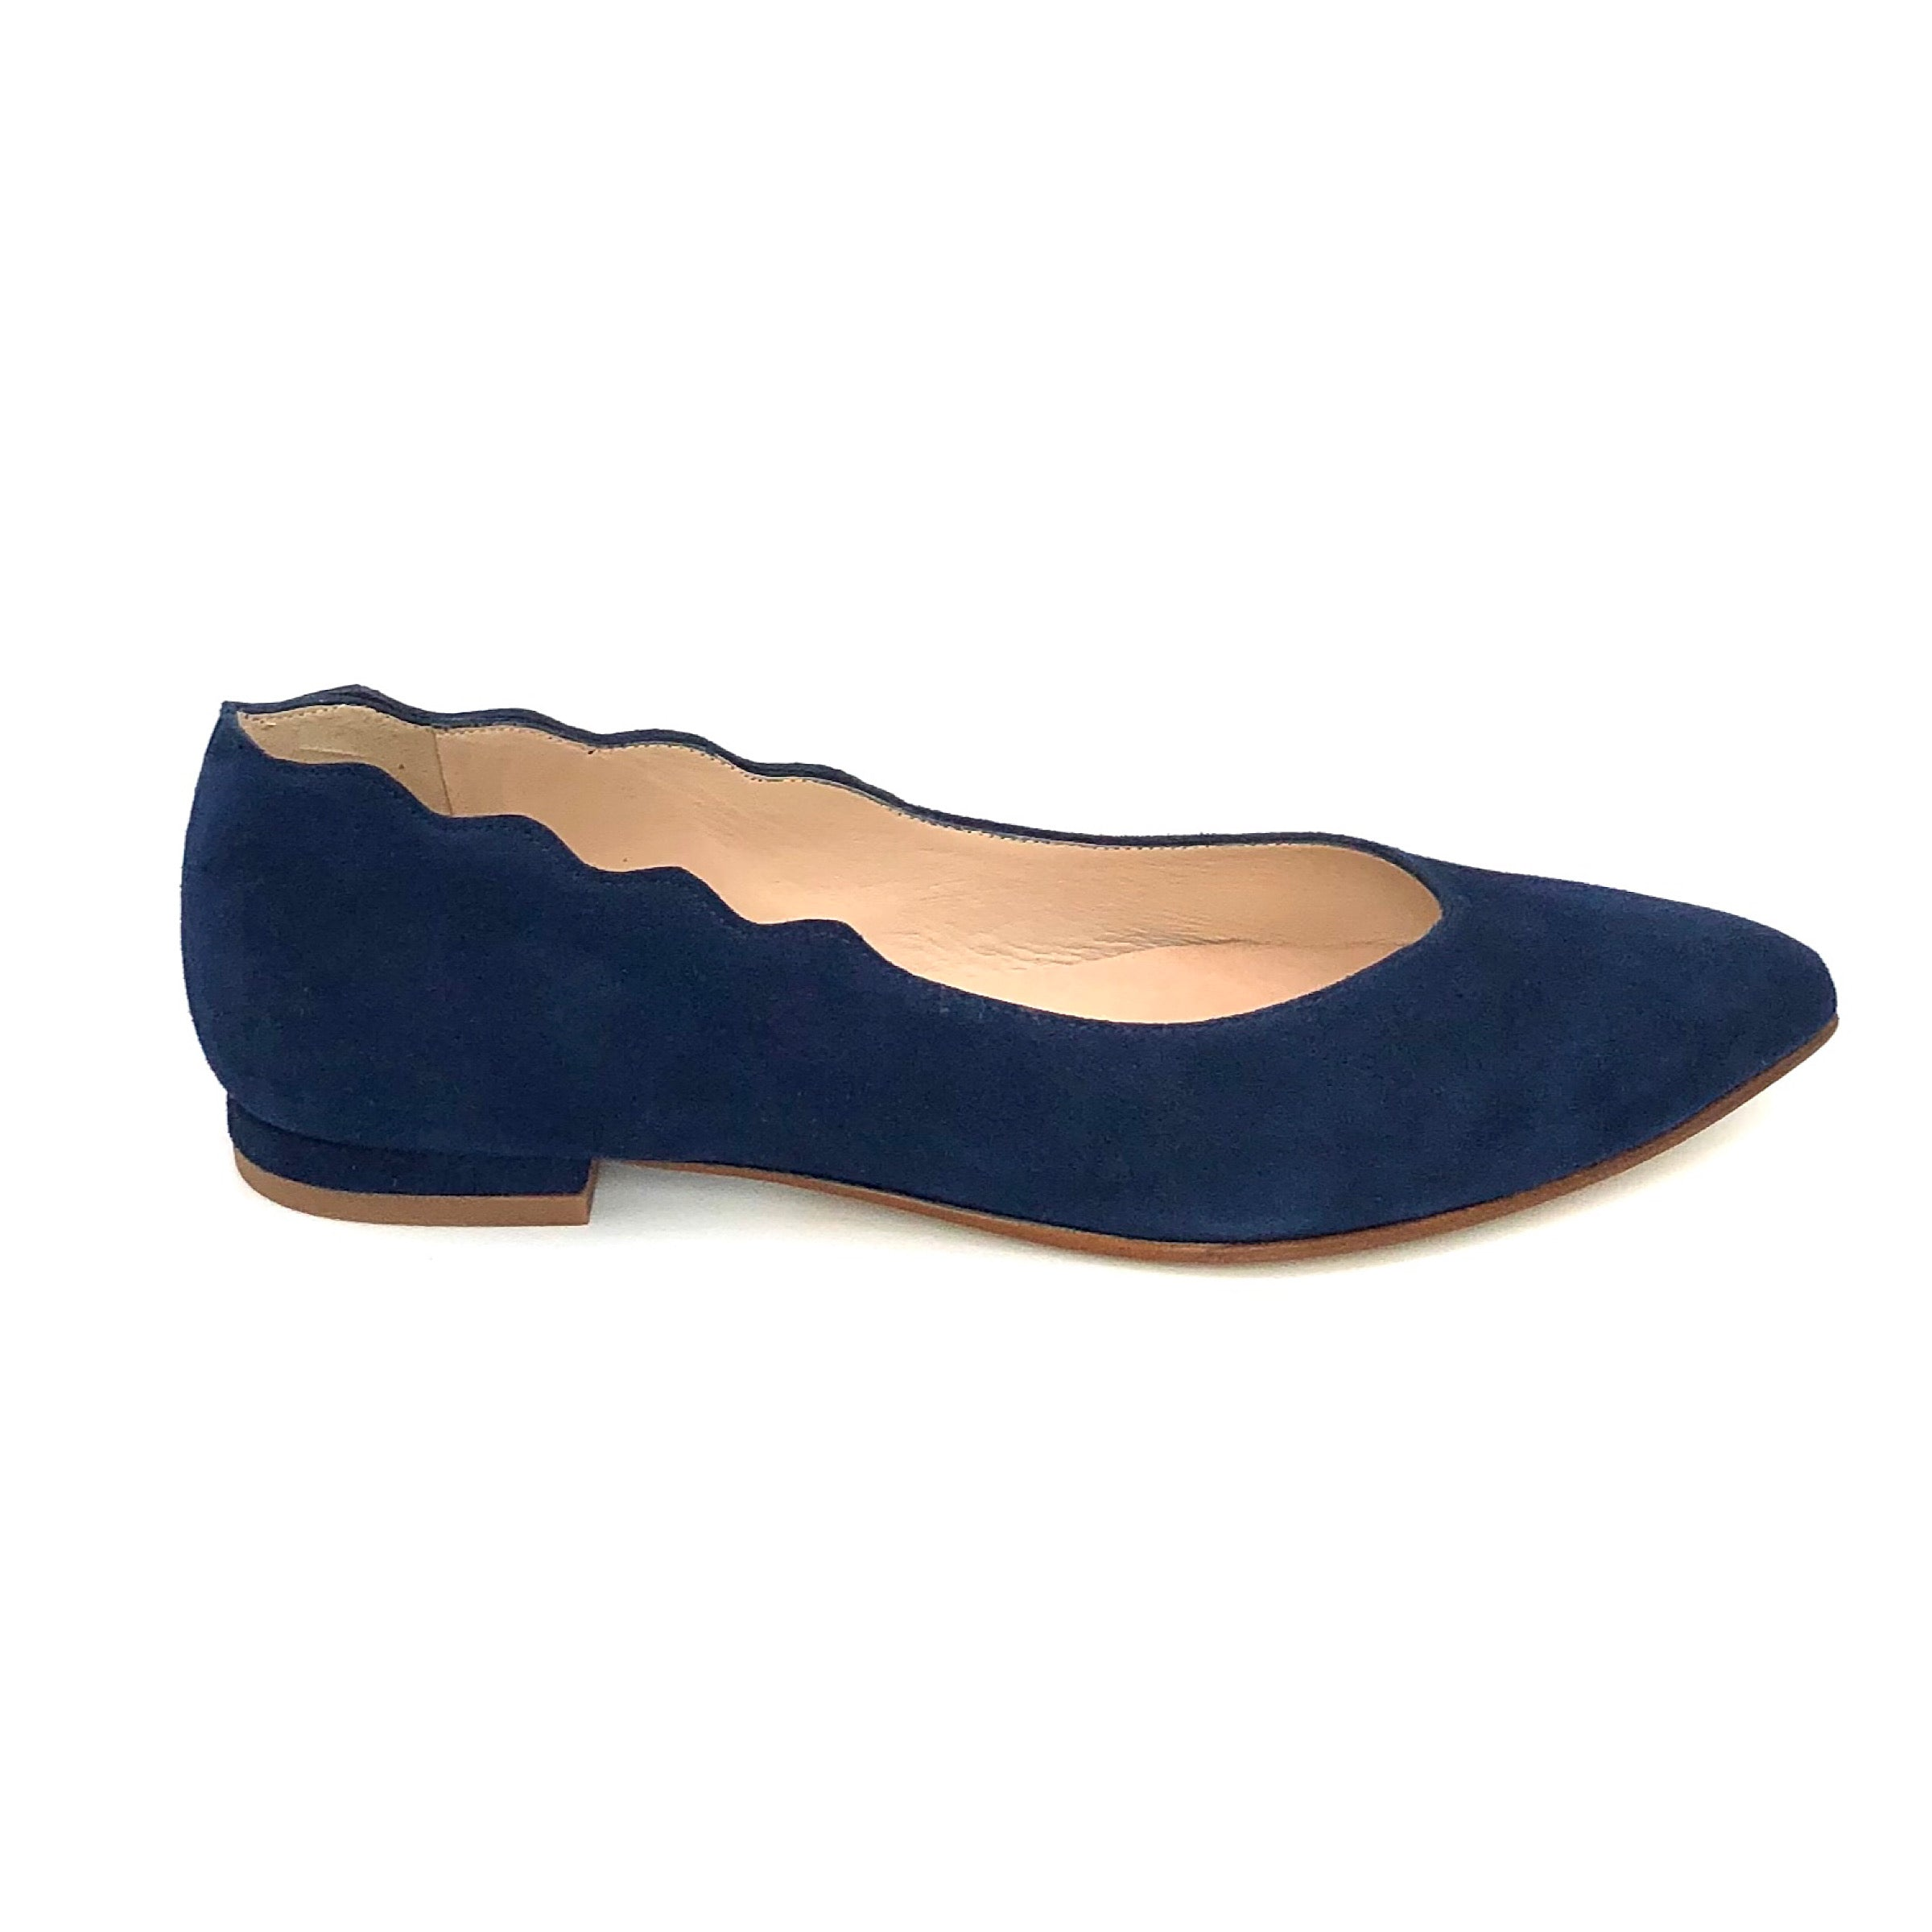 The Almond Flat with Scallop Edge in Navy